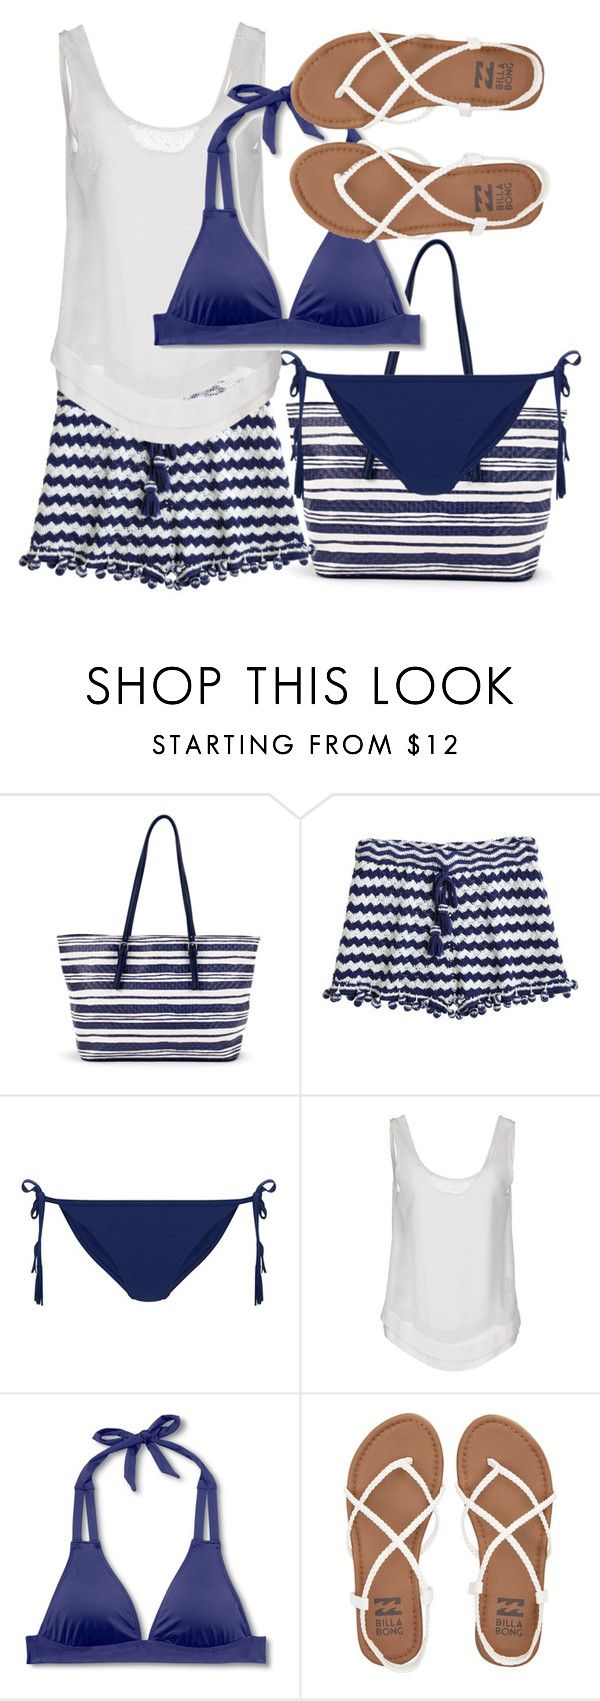 """Blue bikini"" by juliehalloran ❤ liked on Polyvore featuring Calypso St. Barth, New Look, Le Ragazze Di St. Barth, Mossimo and Billabong"